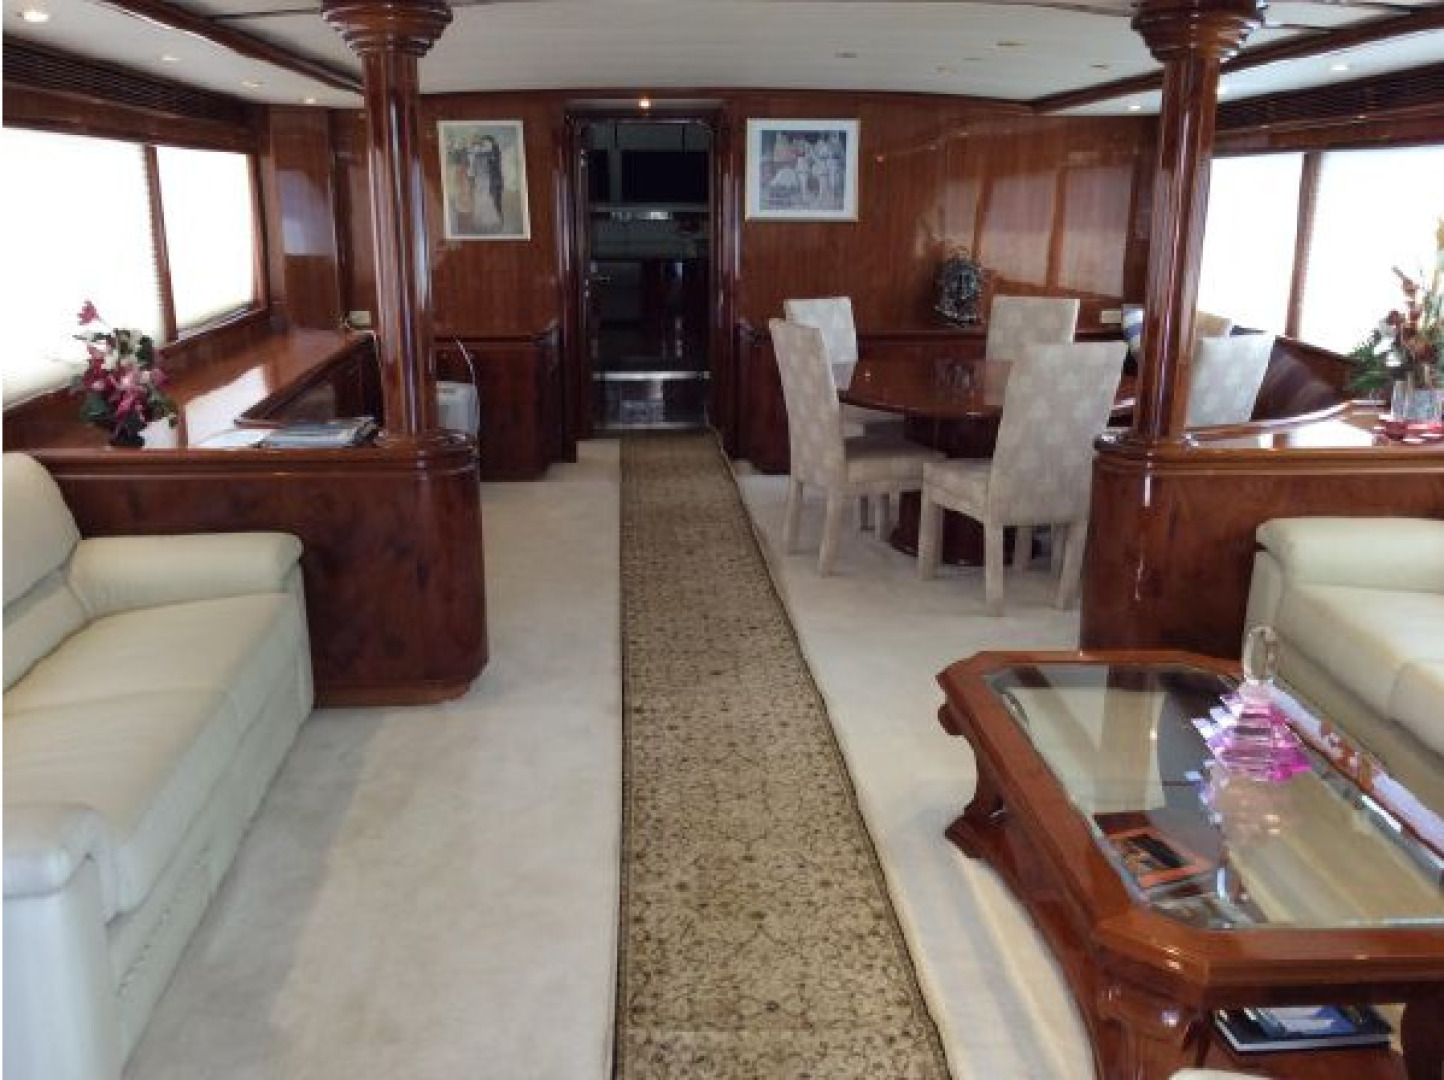 Tarrab-Tri Deck Motor yacht 1990 -Fort Lauderdale-Florida-United States-1551615 | Thumbnail